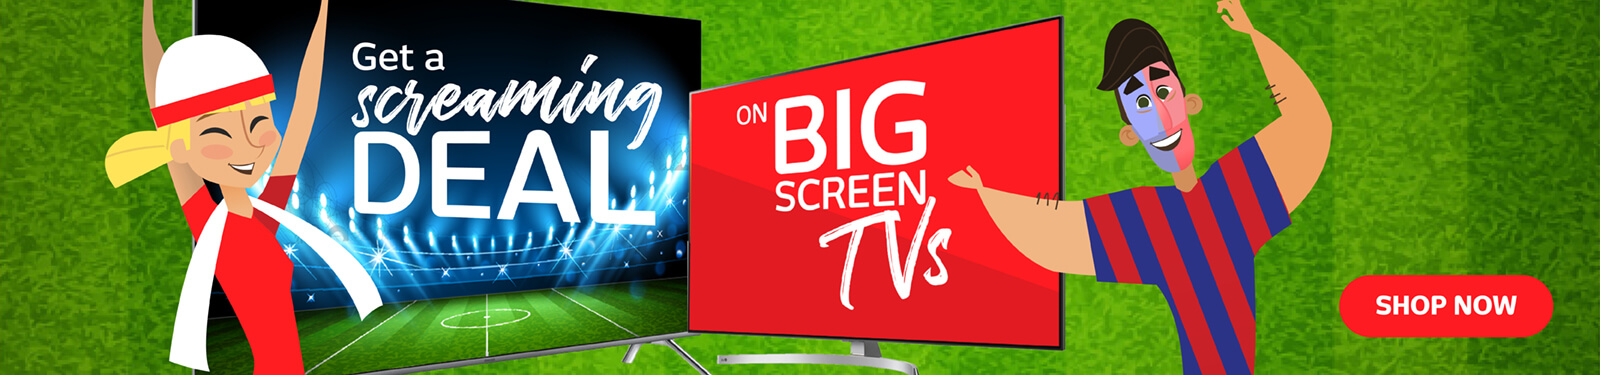 Big Screen TVs